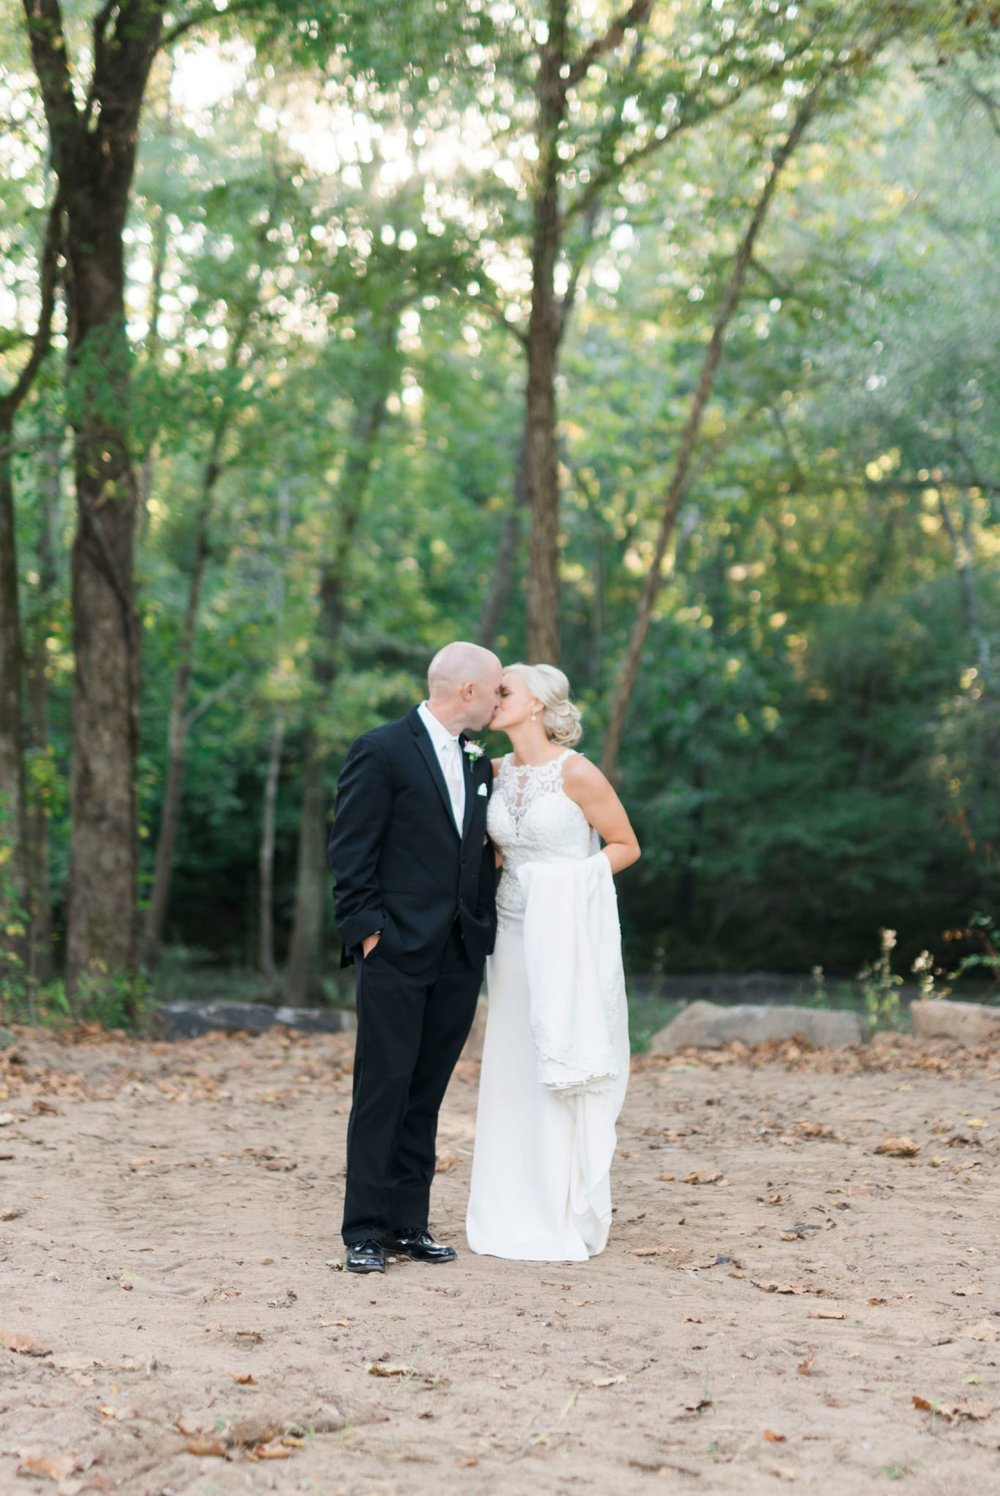 TheMillHouse_ChathamVA_WeddingPhotographer_VirginiaWeddingPhotographer_9.jpg 104.jpg